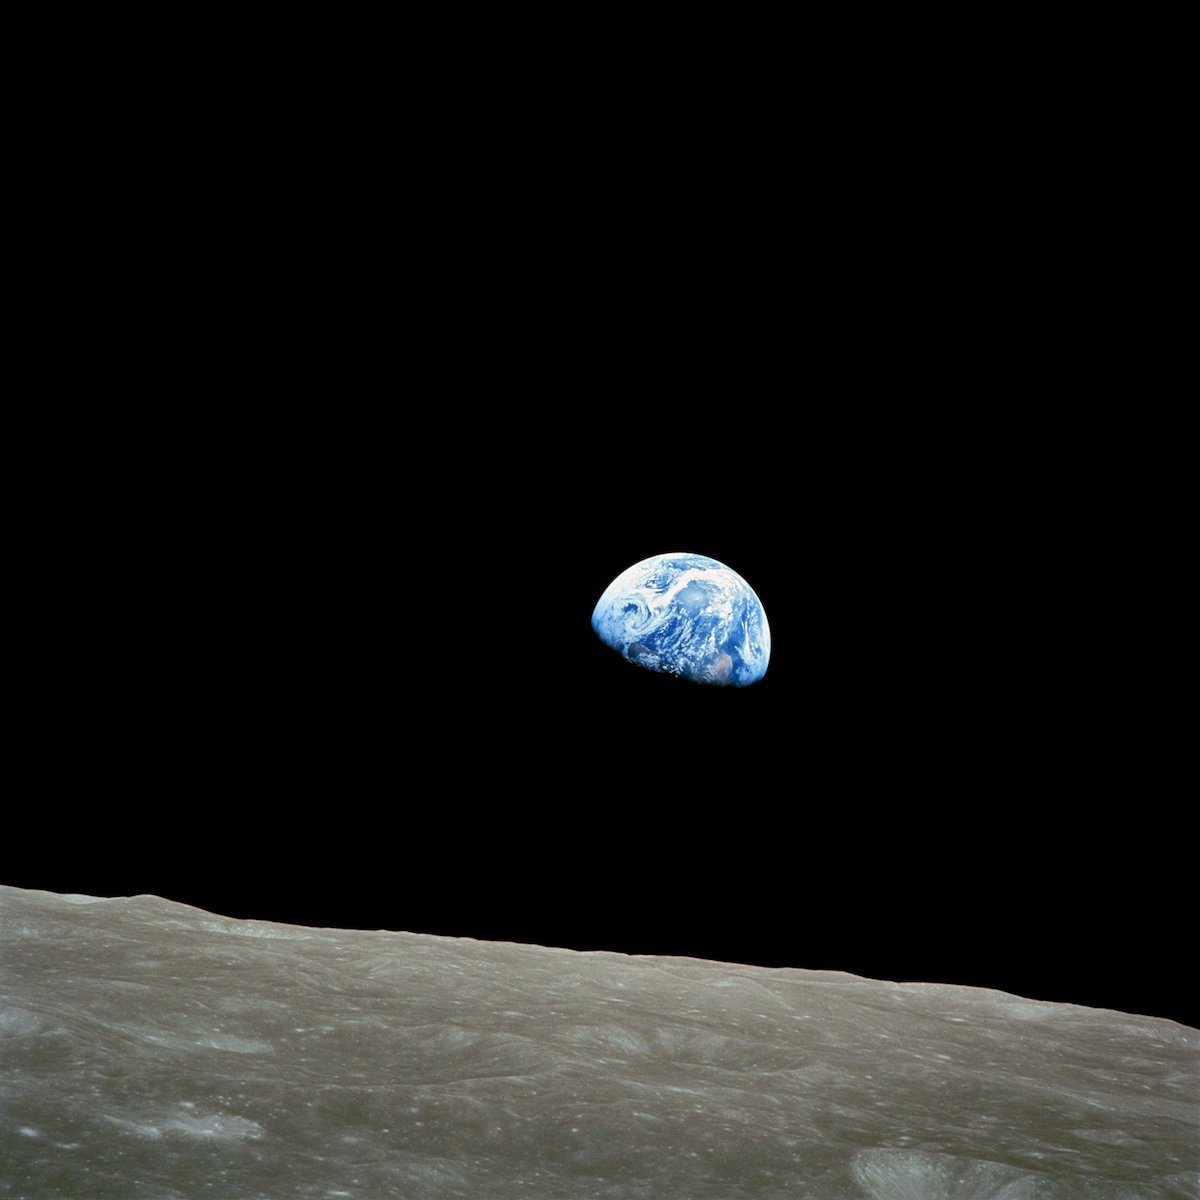 Planet Watch : Earthrise : A New Human Perspective